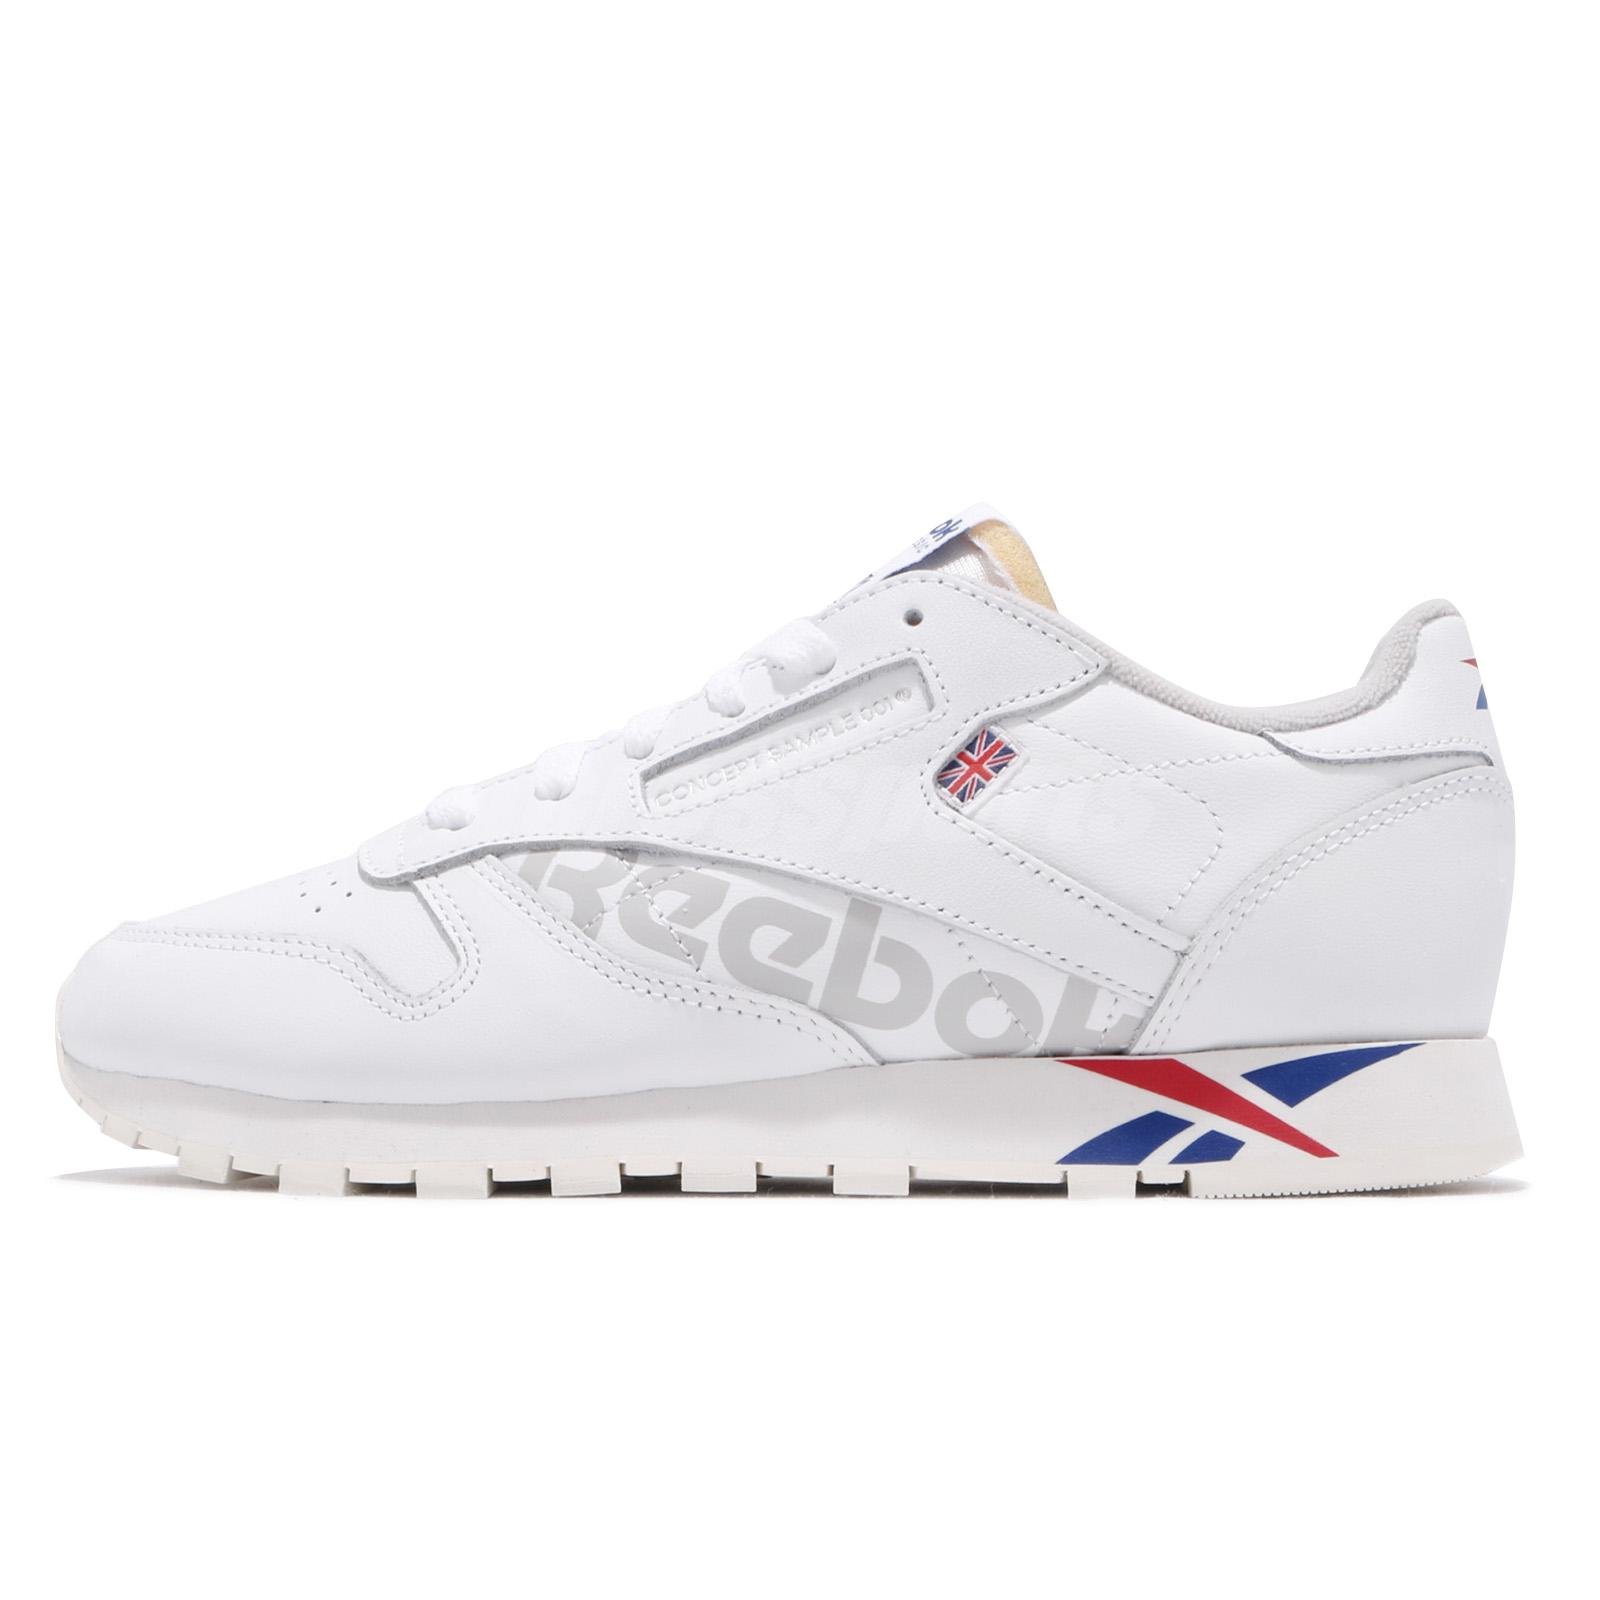 82a4c603f0912 Reebok Classic Leather Altered MU White Dark Royal Red Grey Men Shoes DV4629